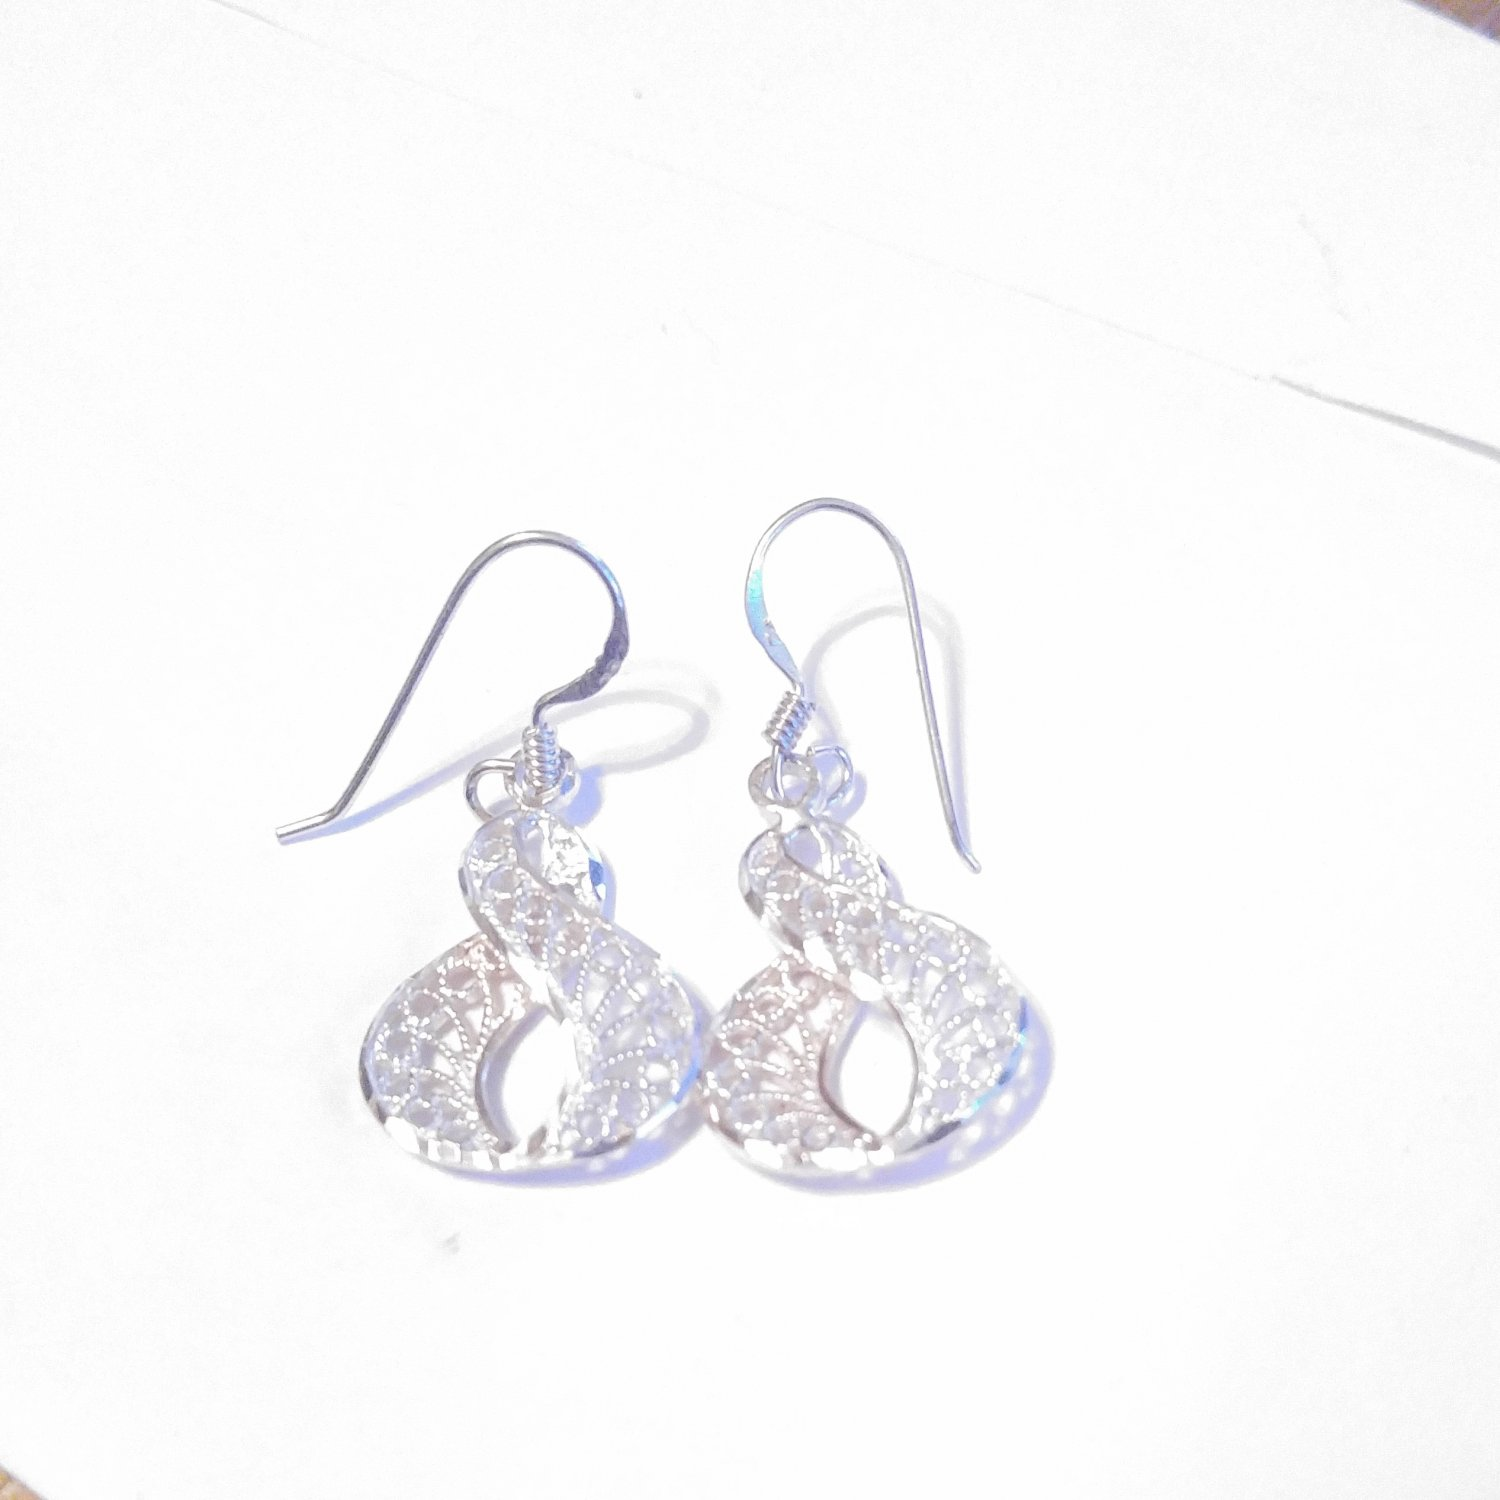 Sterling Filigree Swirled Figure 8 Earrings